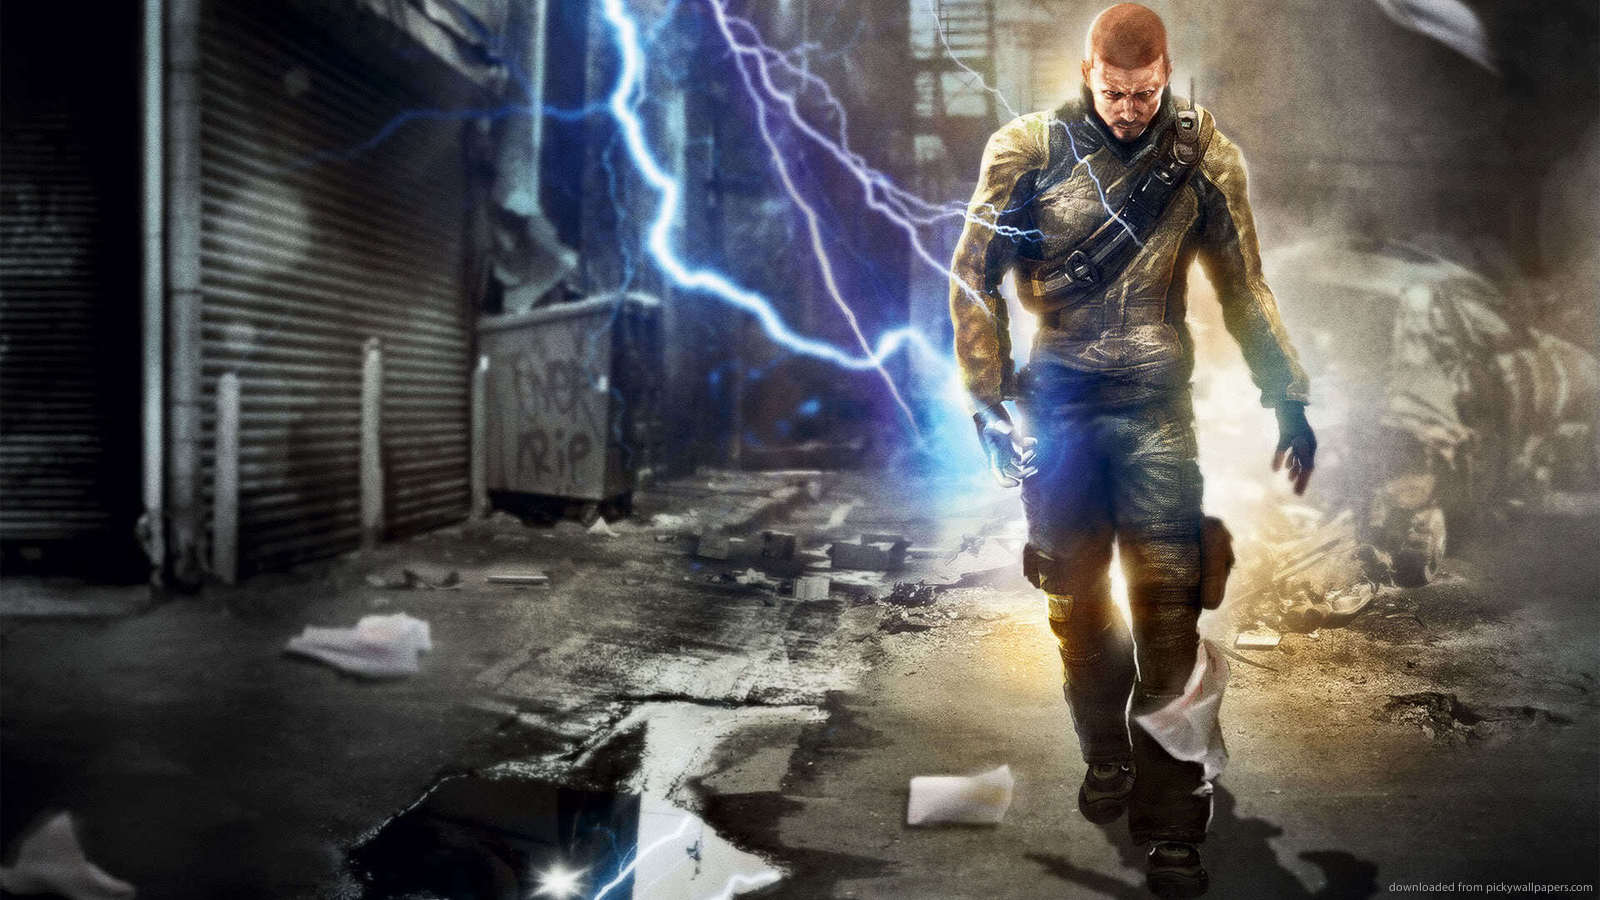 View And Download Infamous 2 Wallpapers